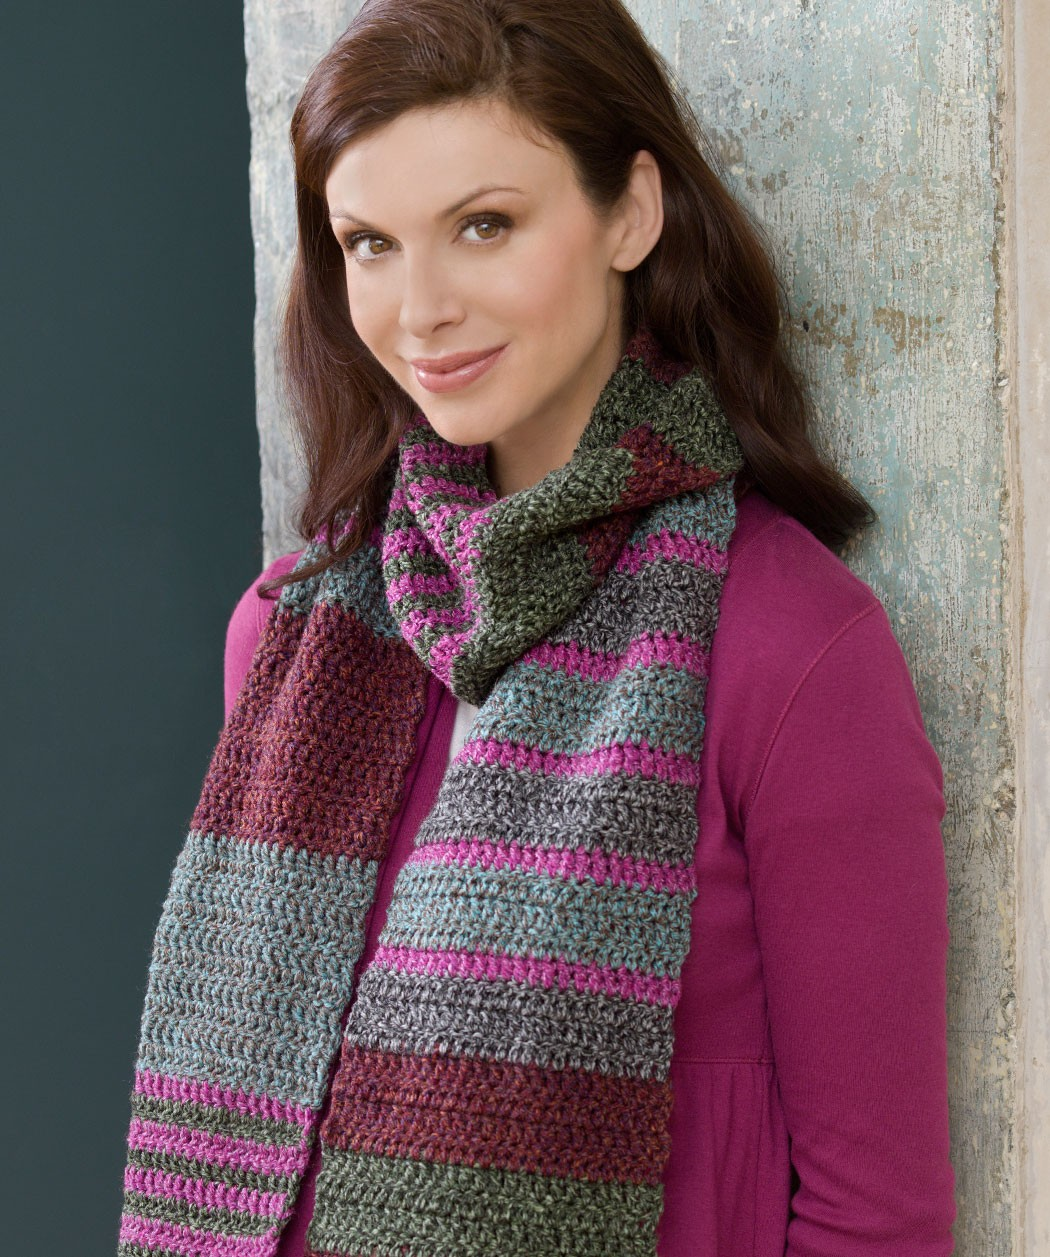 Knit Striped Scarf Pattern : Striped Scarf Knitting Pattern A Knitting Blog